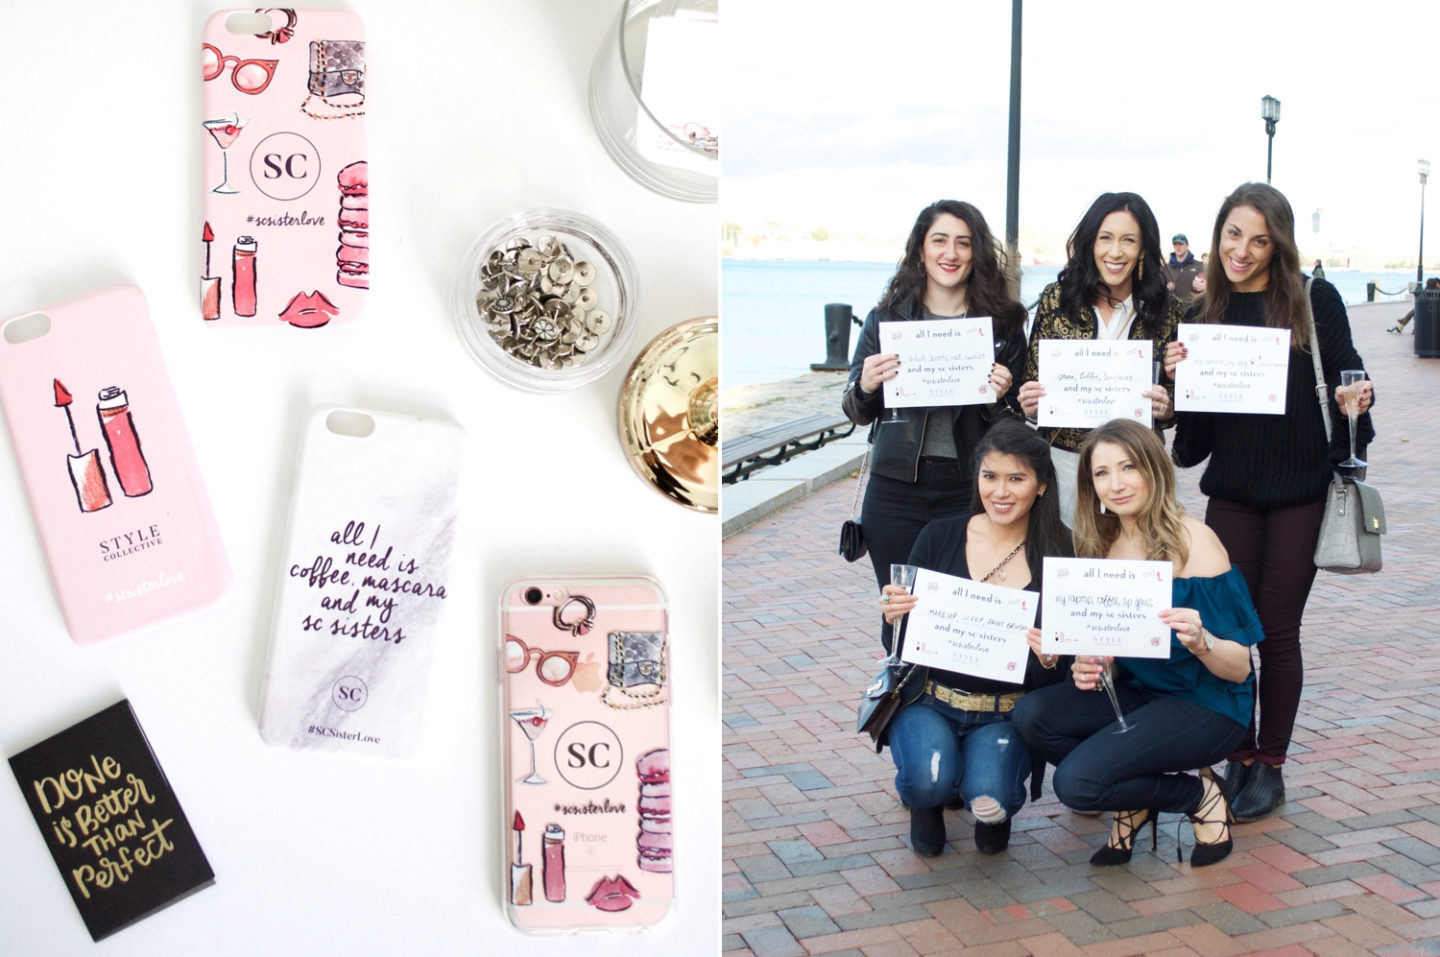 IT'S A PARTY: $1500 of prizes, girly phone cases & being your own #GIRLBOSS!